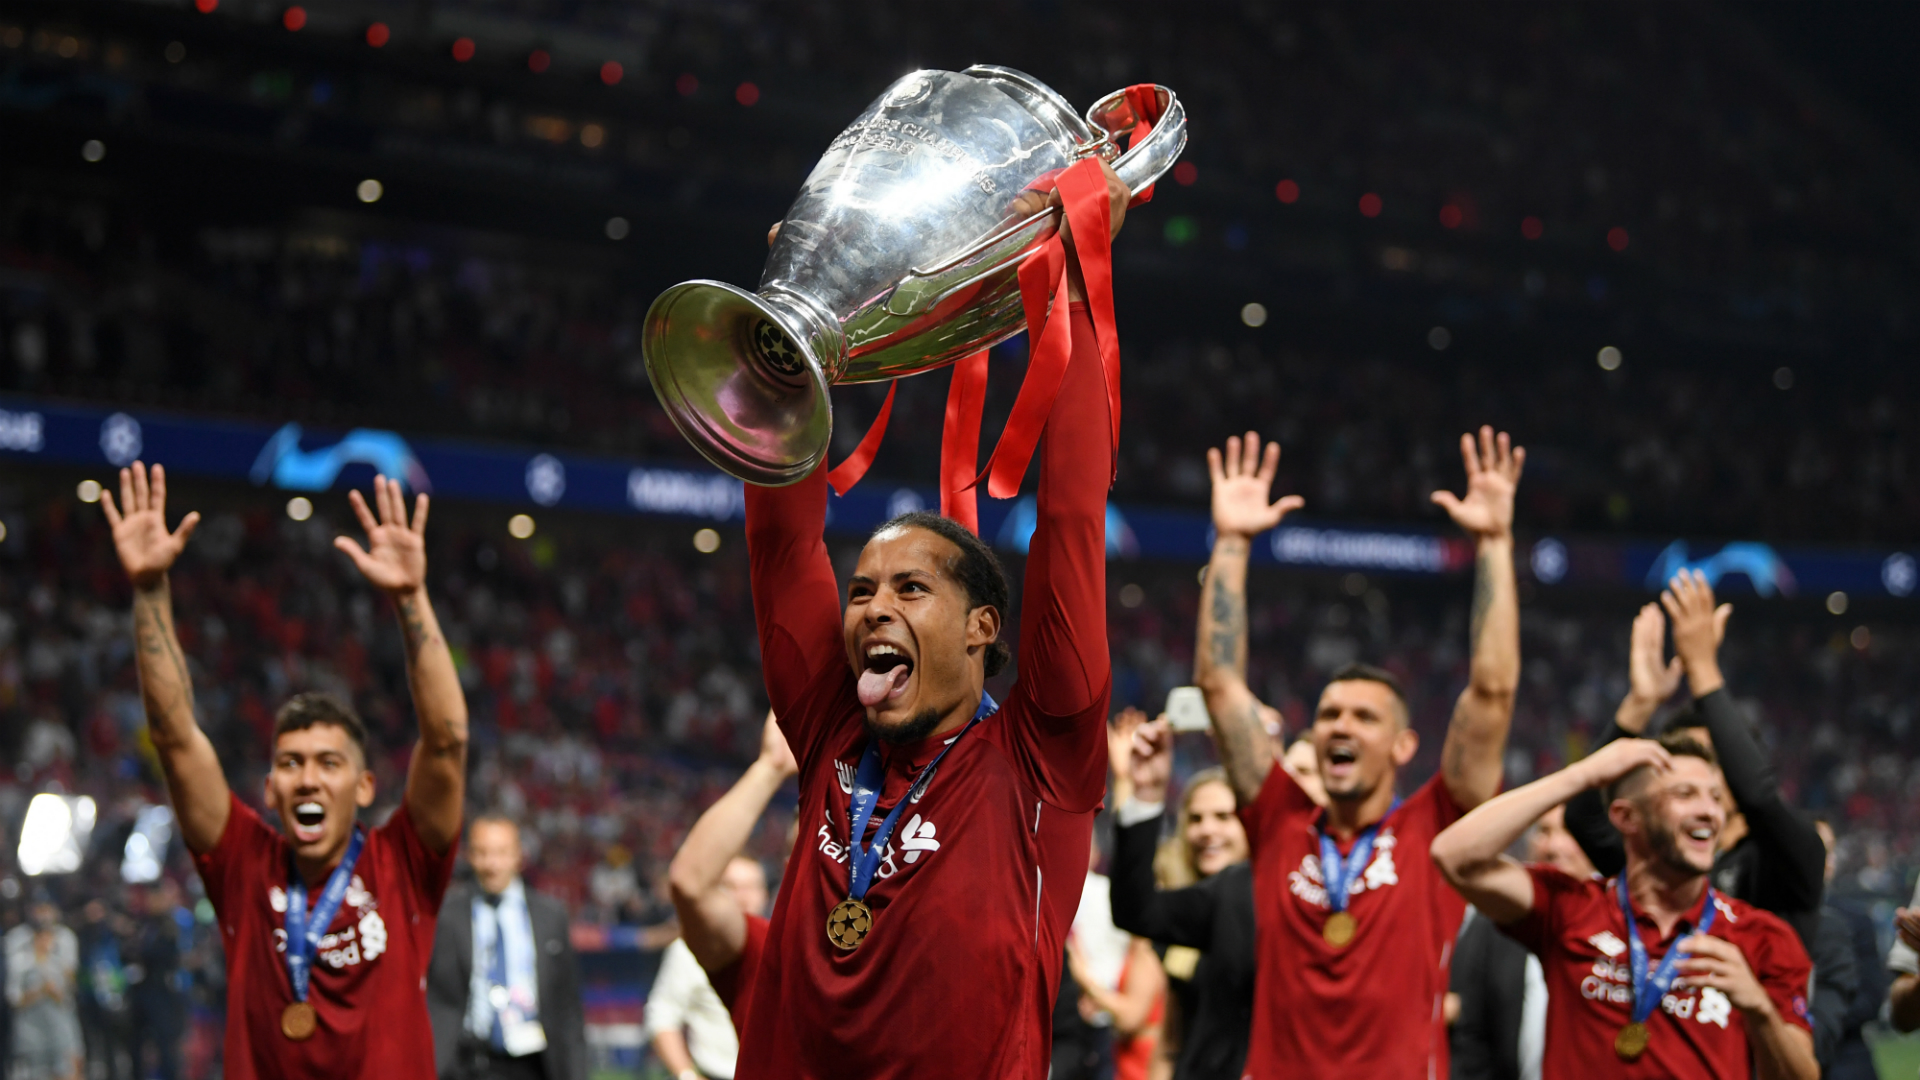 Van Dijk: Liverpool hungry for more success after Champions League glory